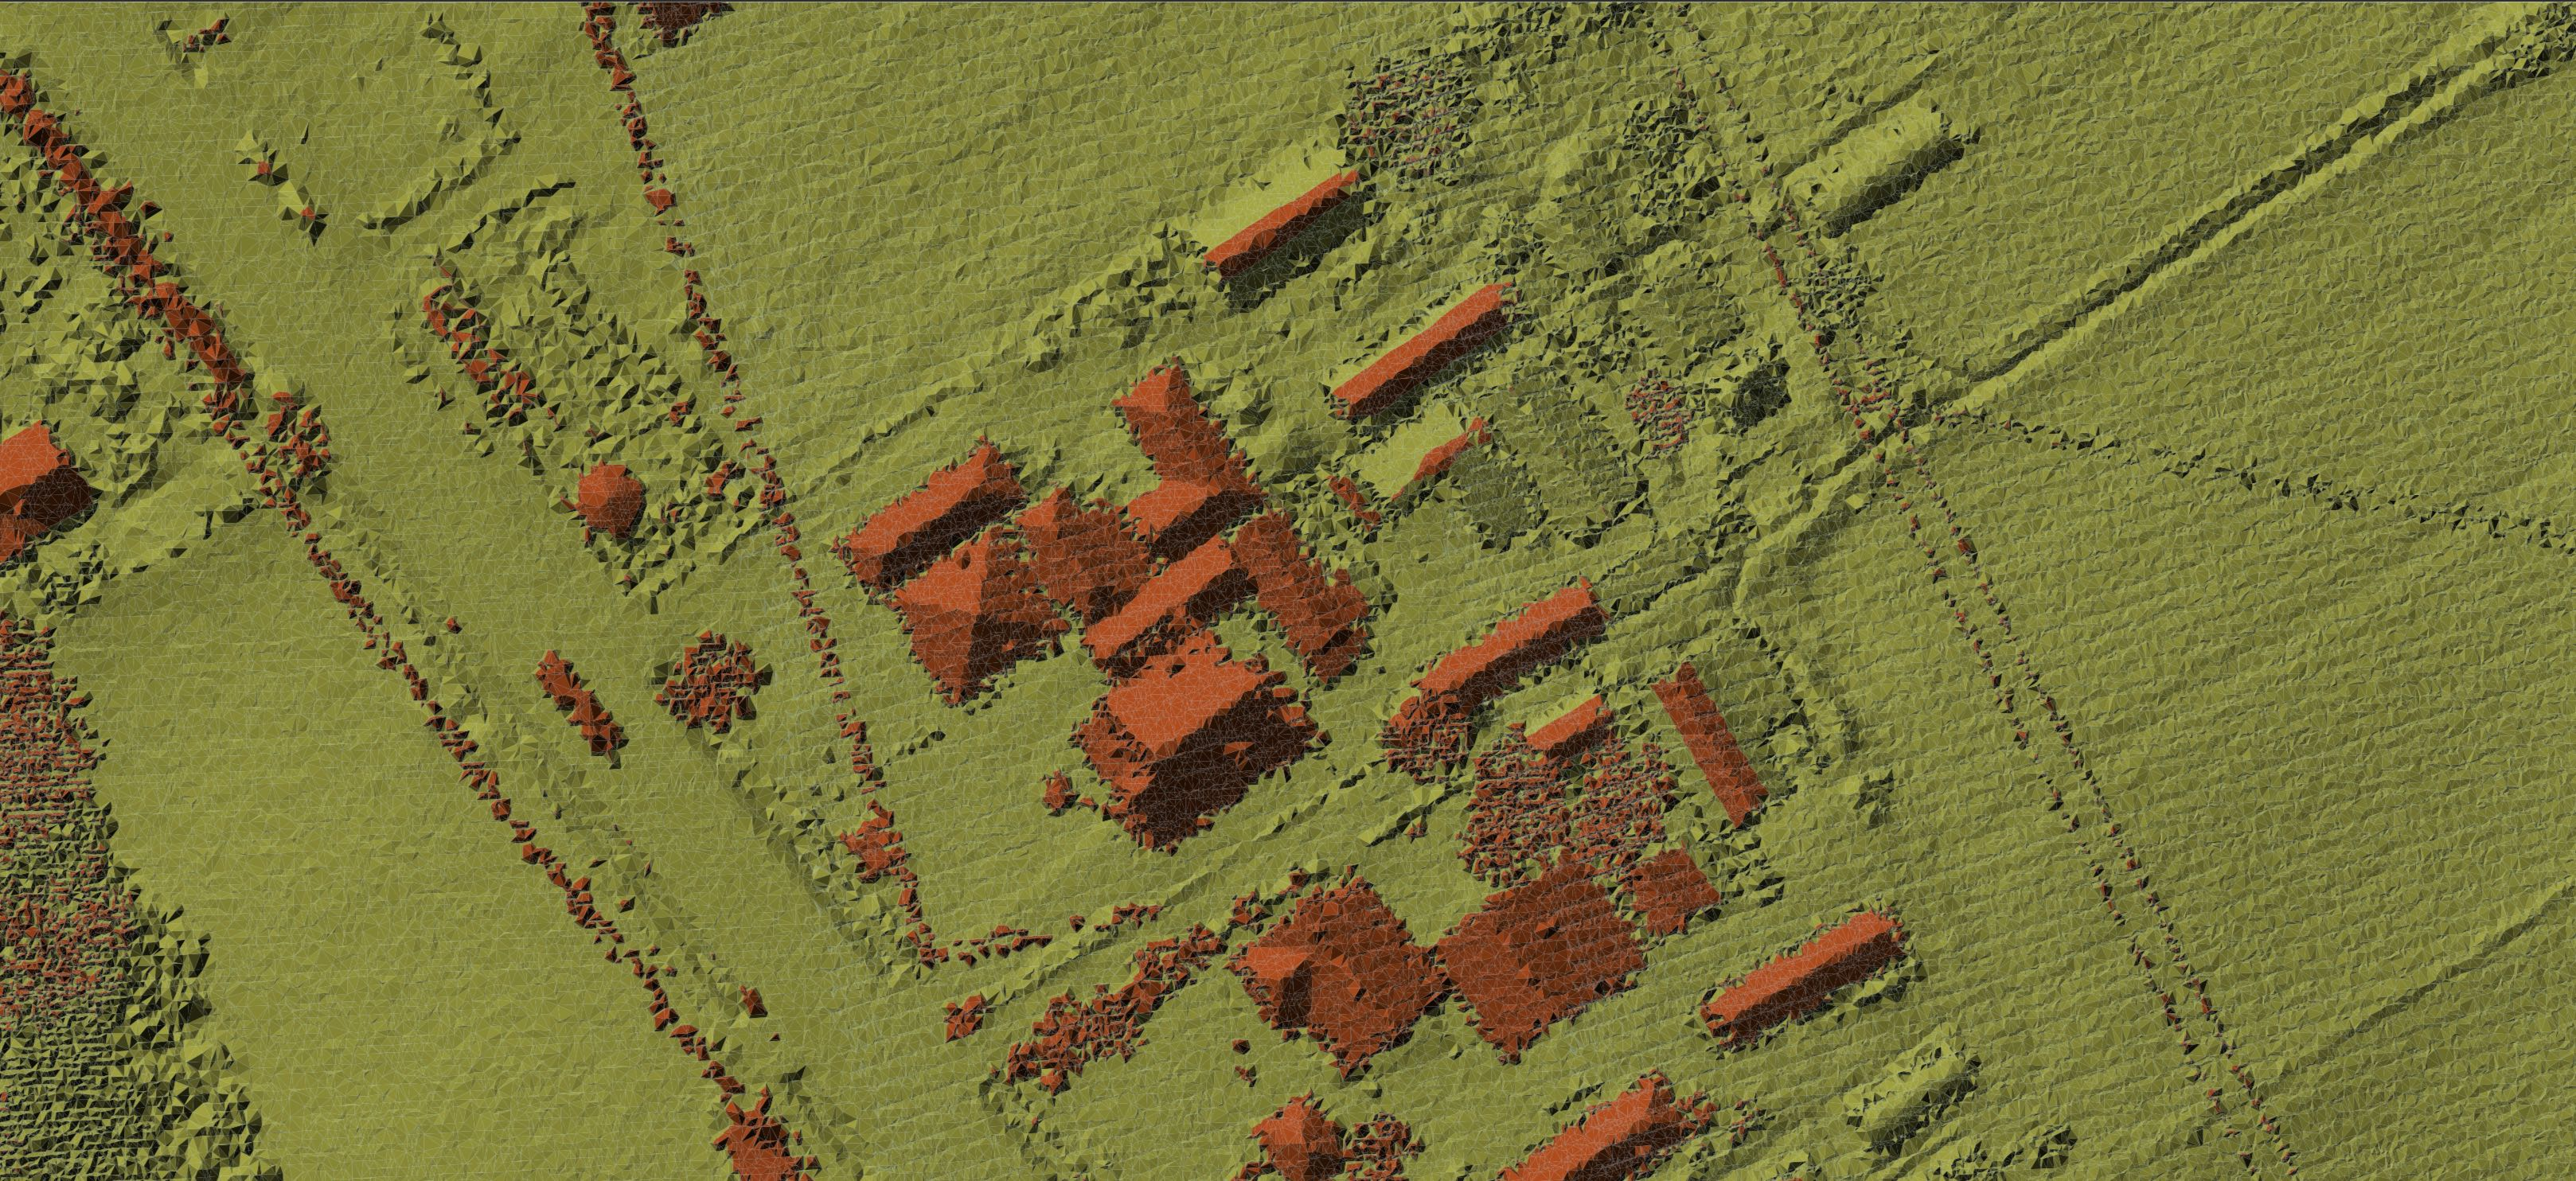 The Government of Serbia, with funding from the European Union, is using LiDAR technology to create Digital Terrain Models to help predict future impacts from flooding.